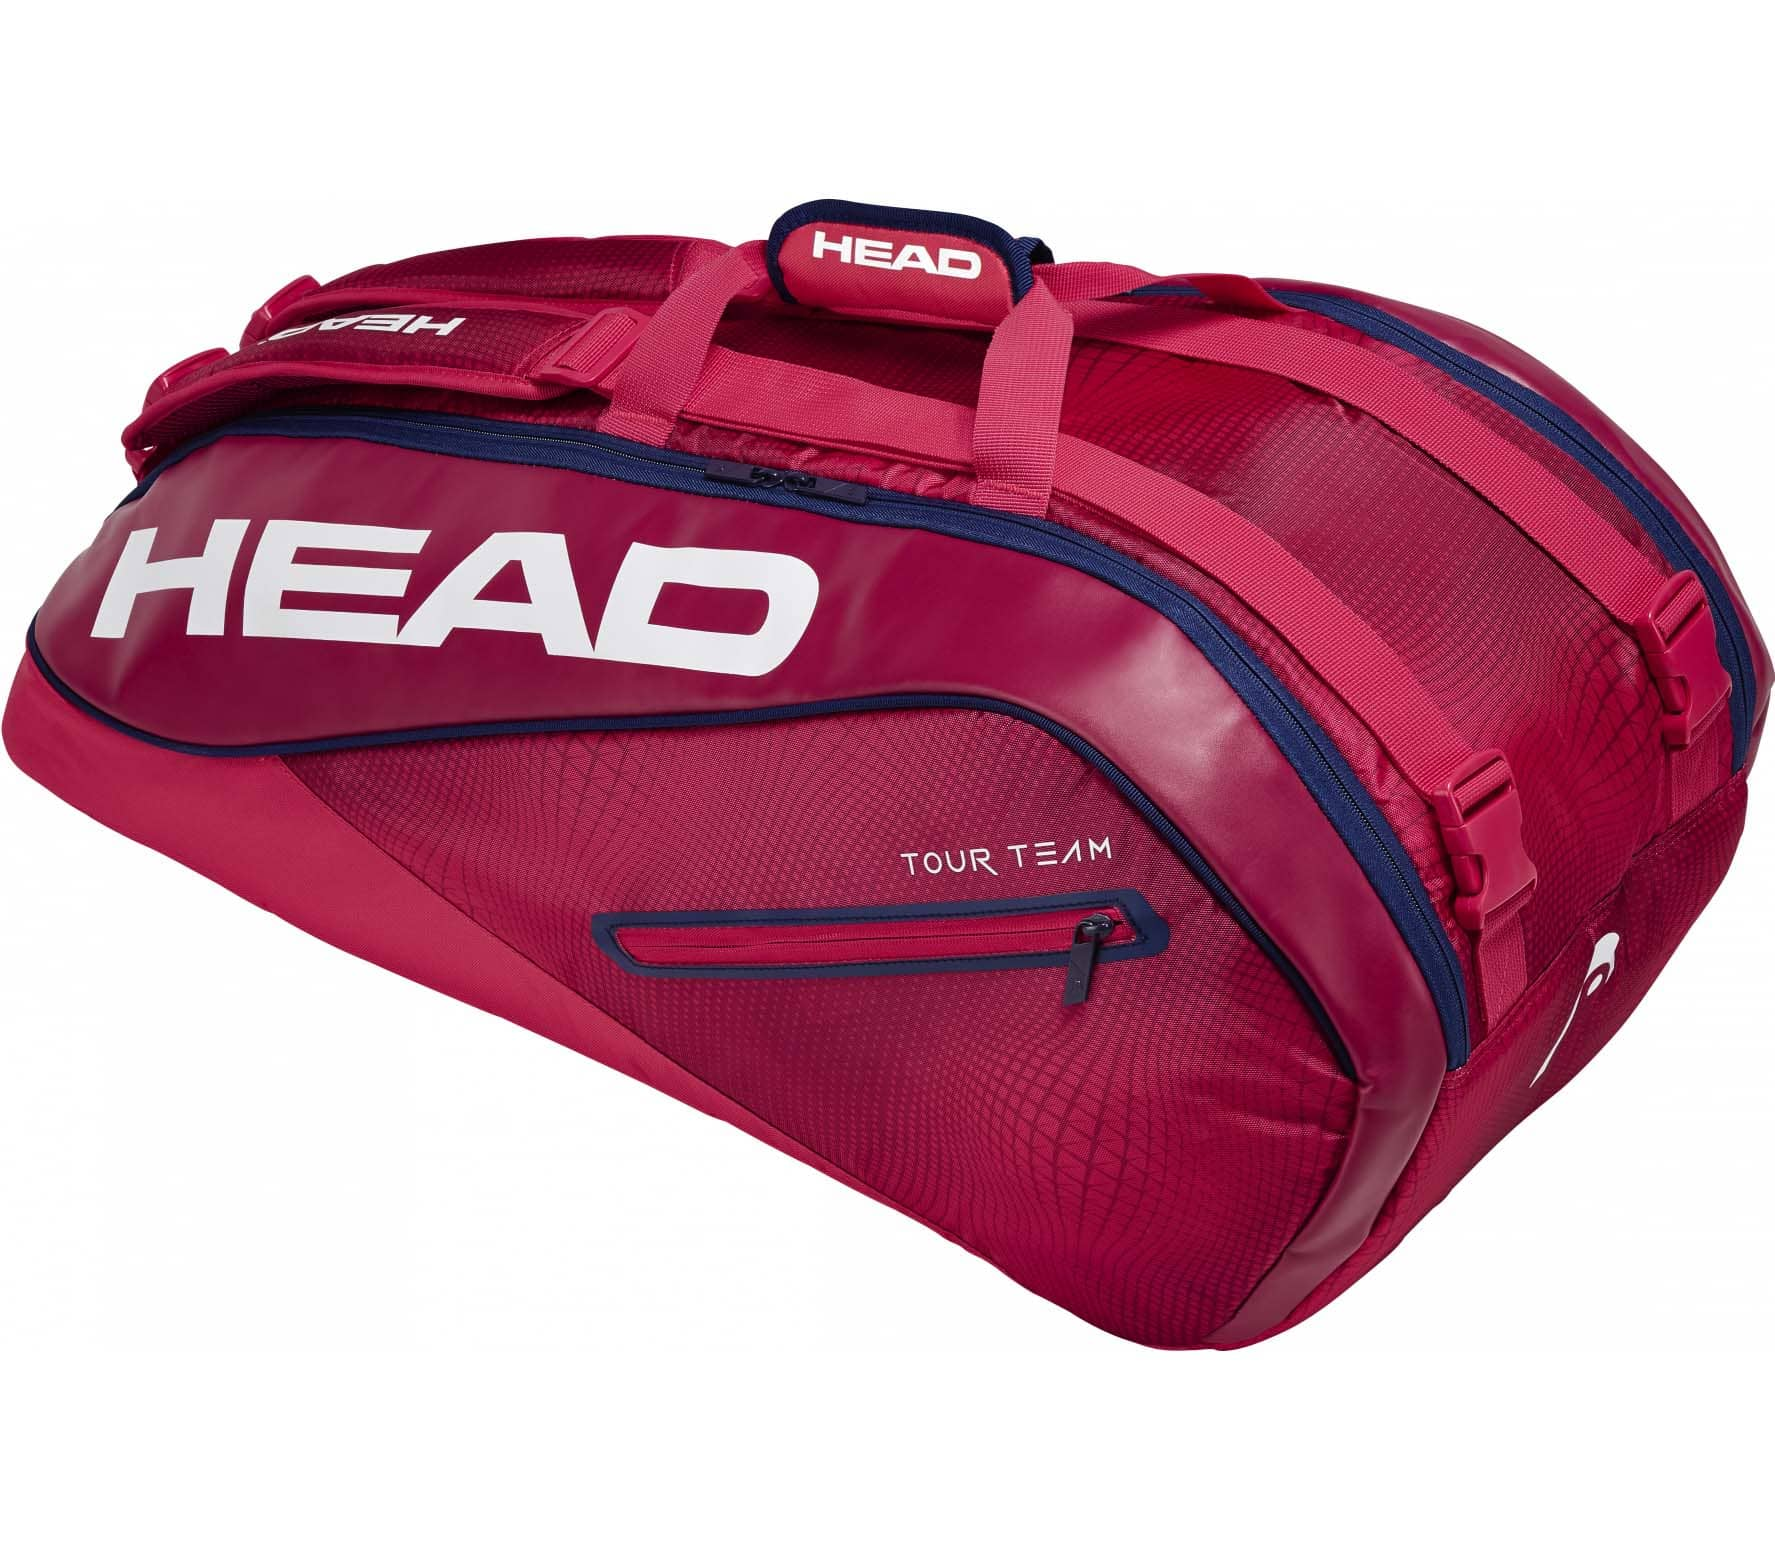 Head Tour Team 9R Supercombi Tennistasche red